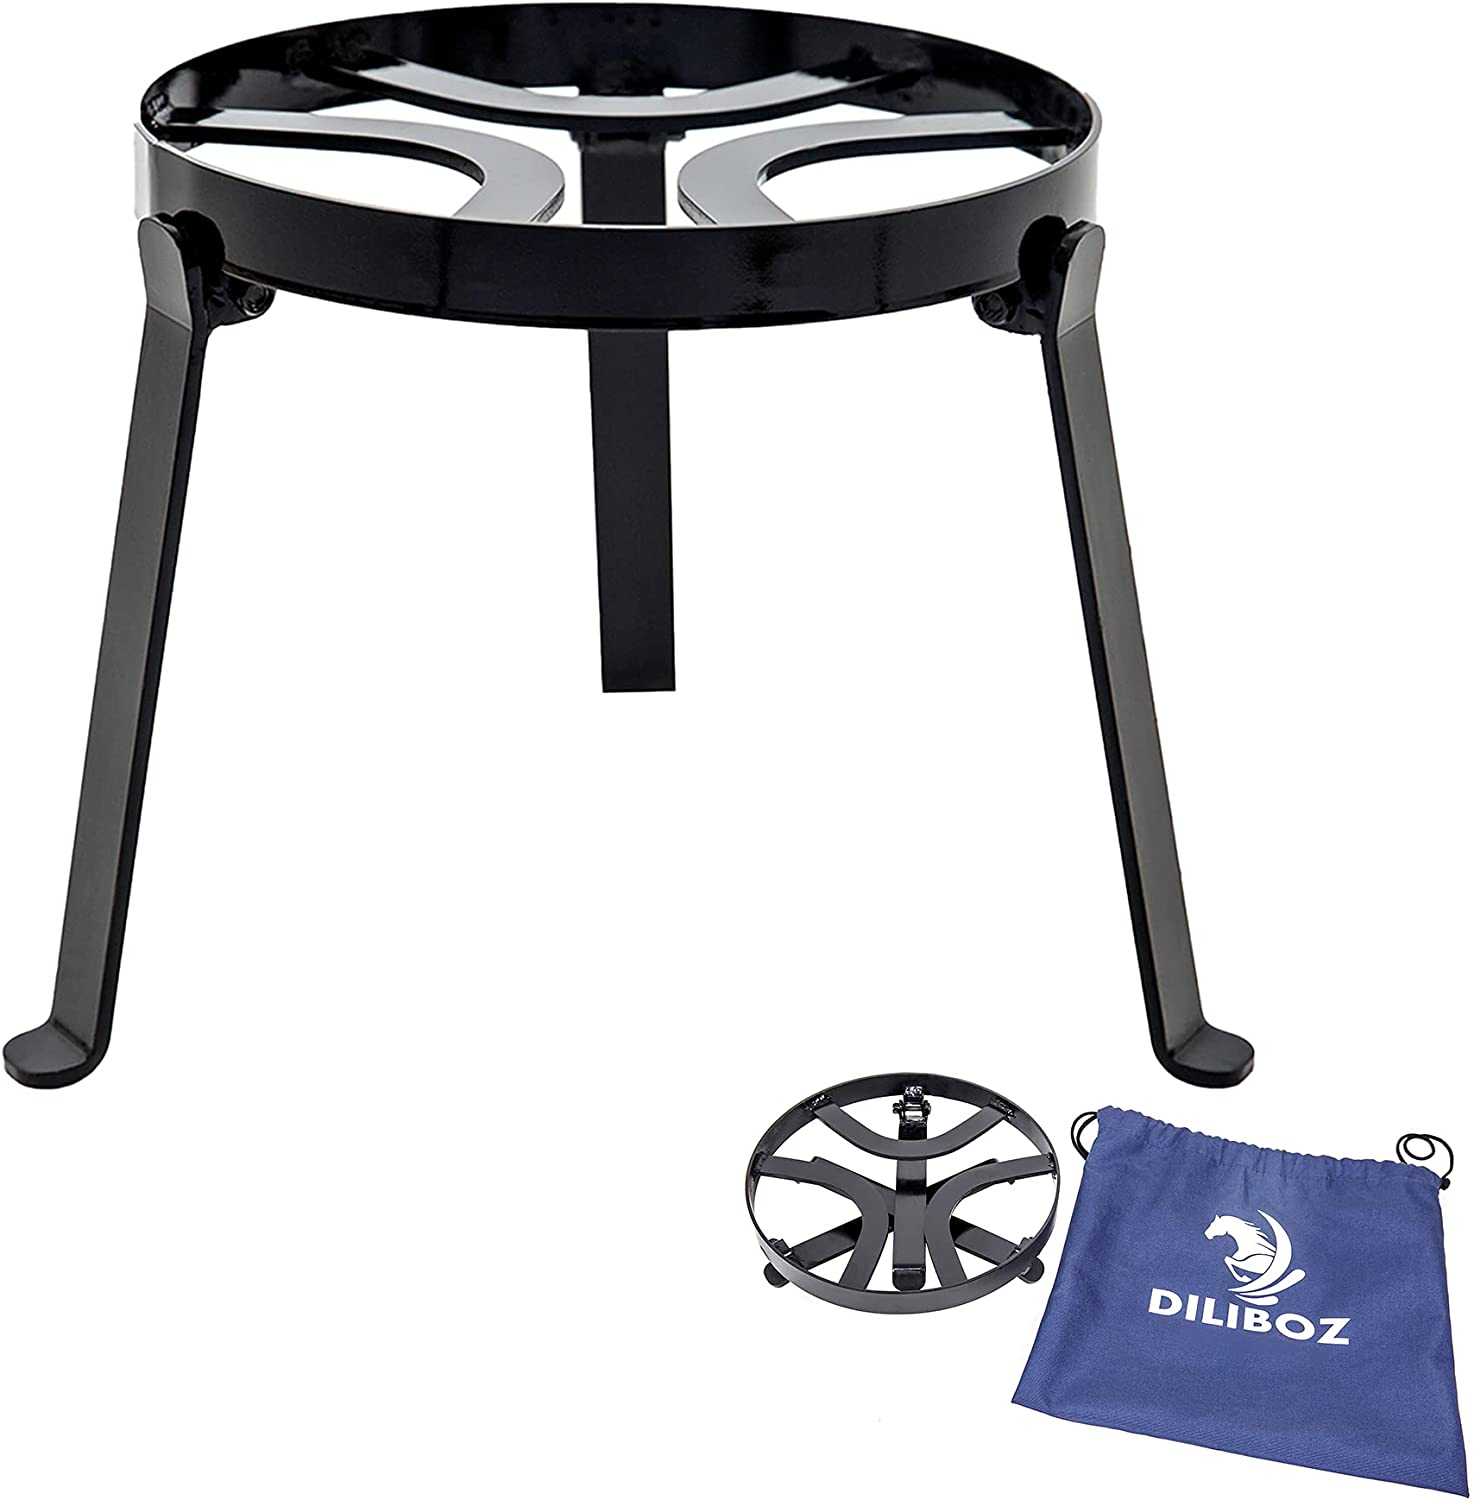 Diliboz campfire tripod for camping cooking in cast iron - campfire grill for fire pit dutch oven - outdoor open fire cooking and survival stove